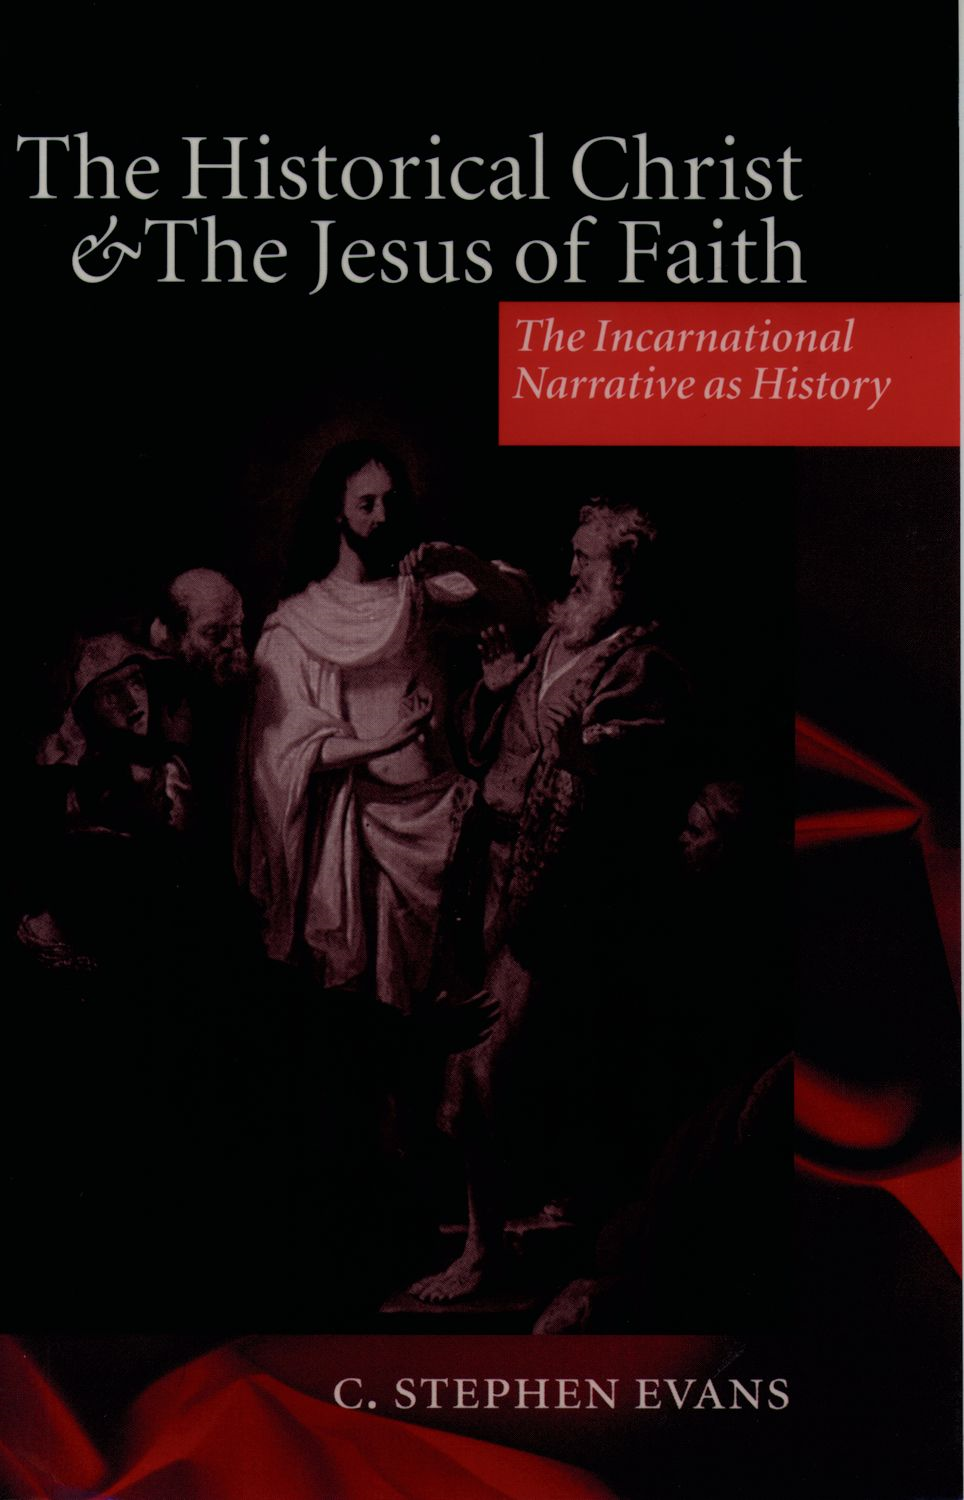 The Historical Christ and the Jesus of Faith: The Incarnational Narrative as History